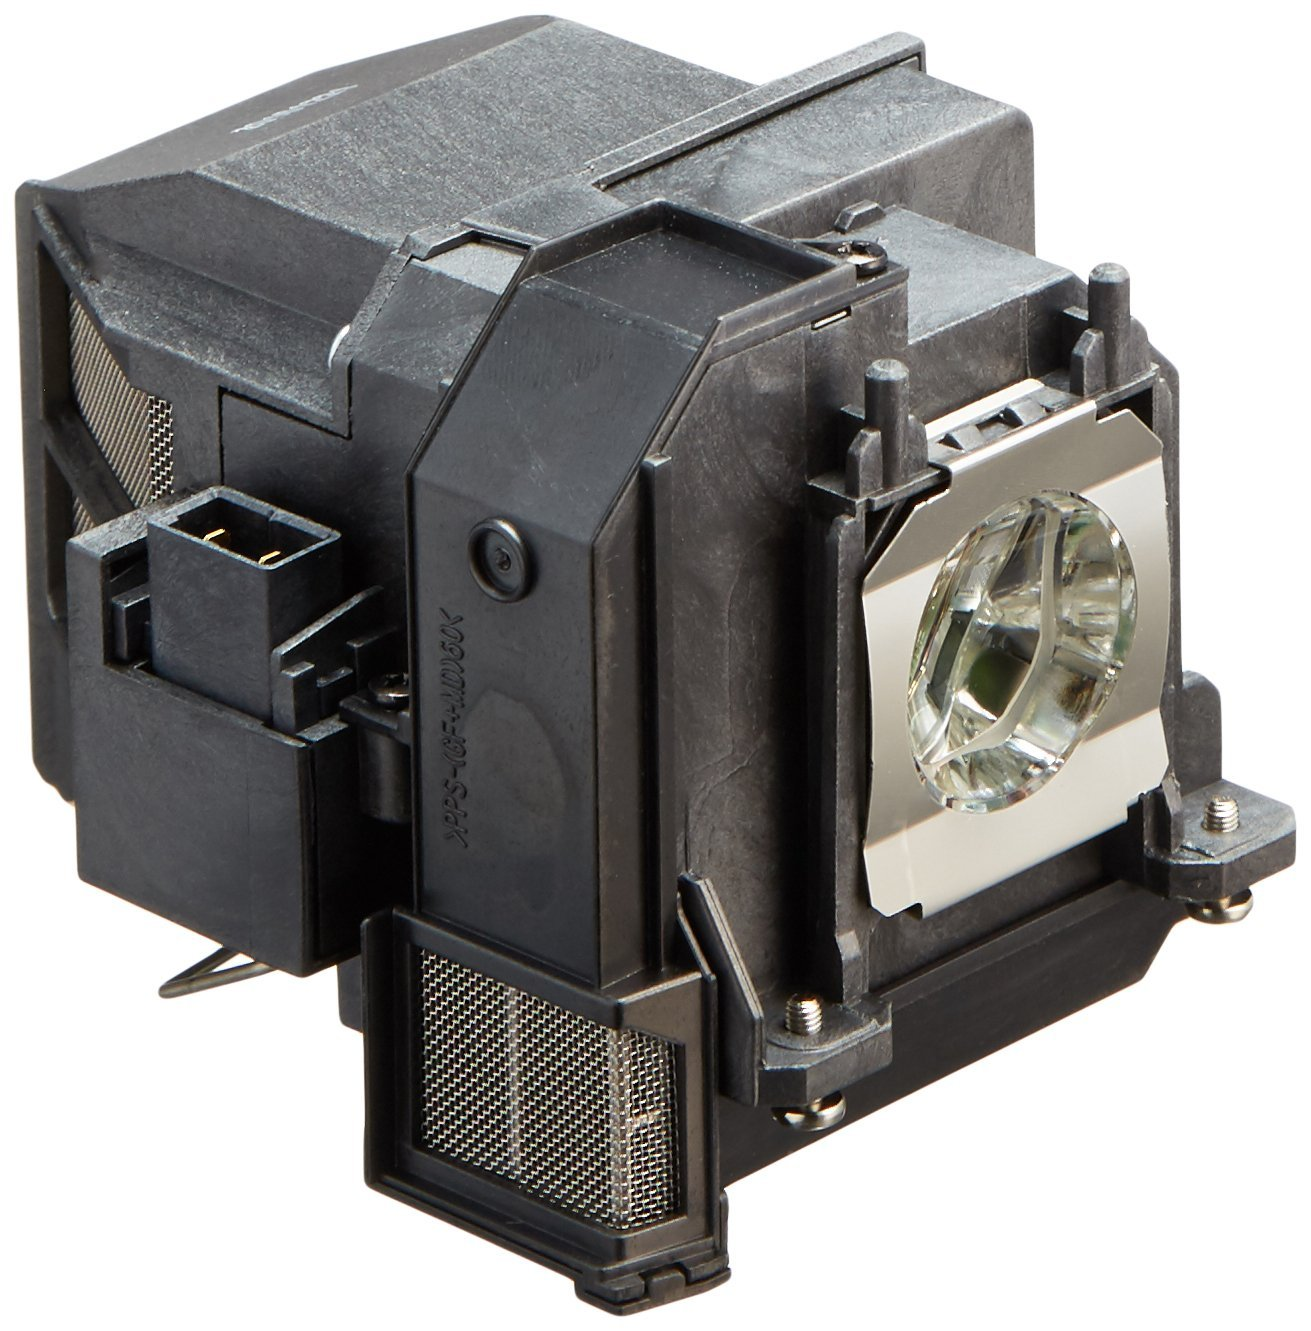 Epson ELPLP80 Replacement Projector Lamp by Epson